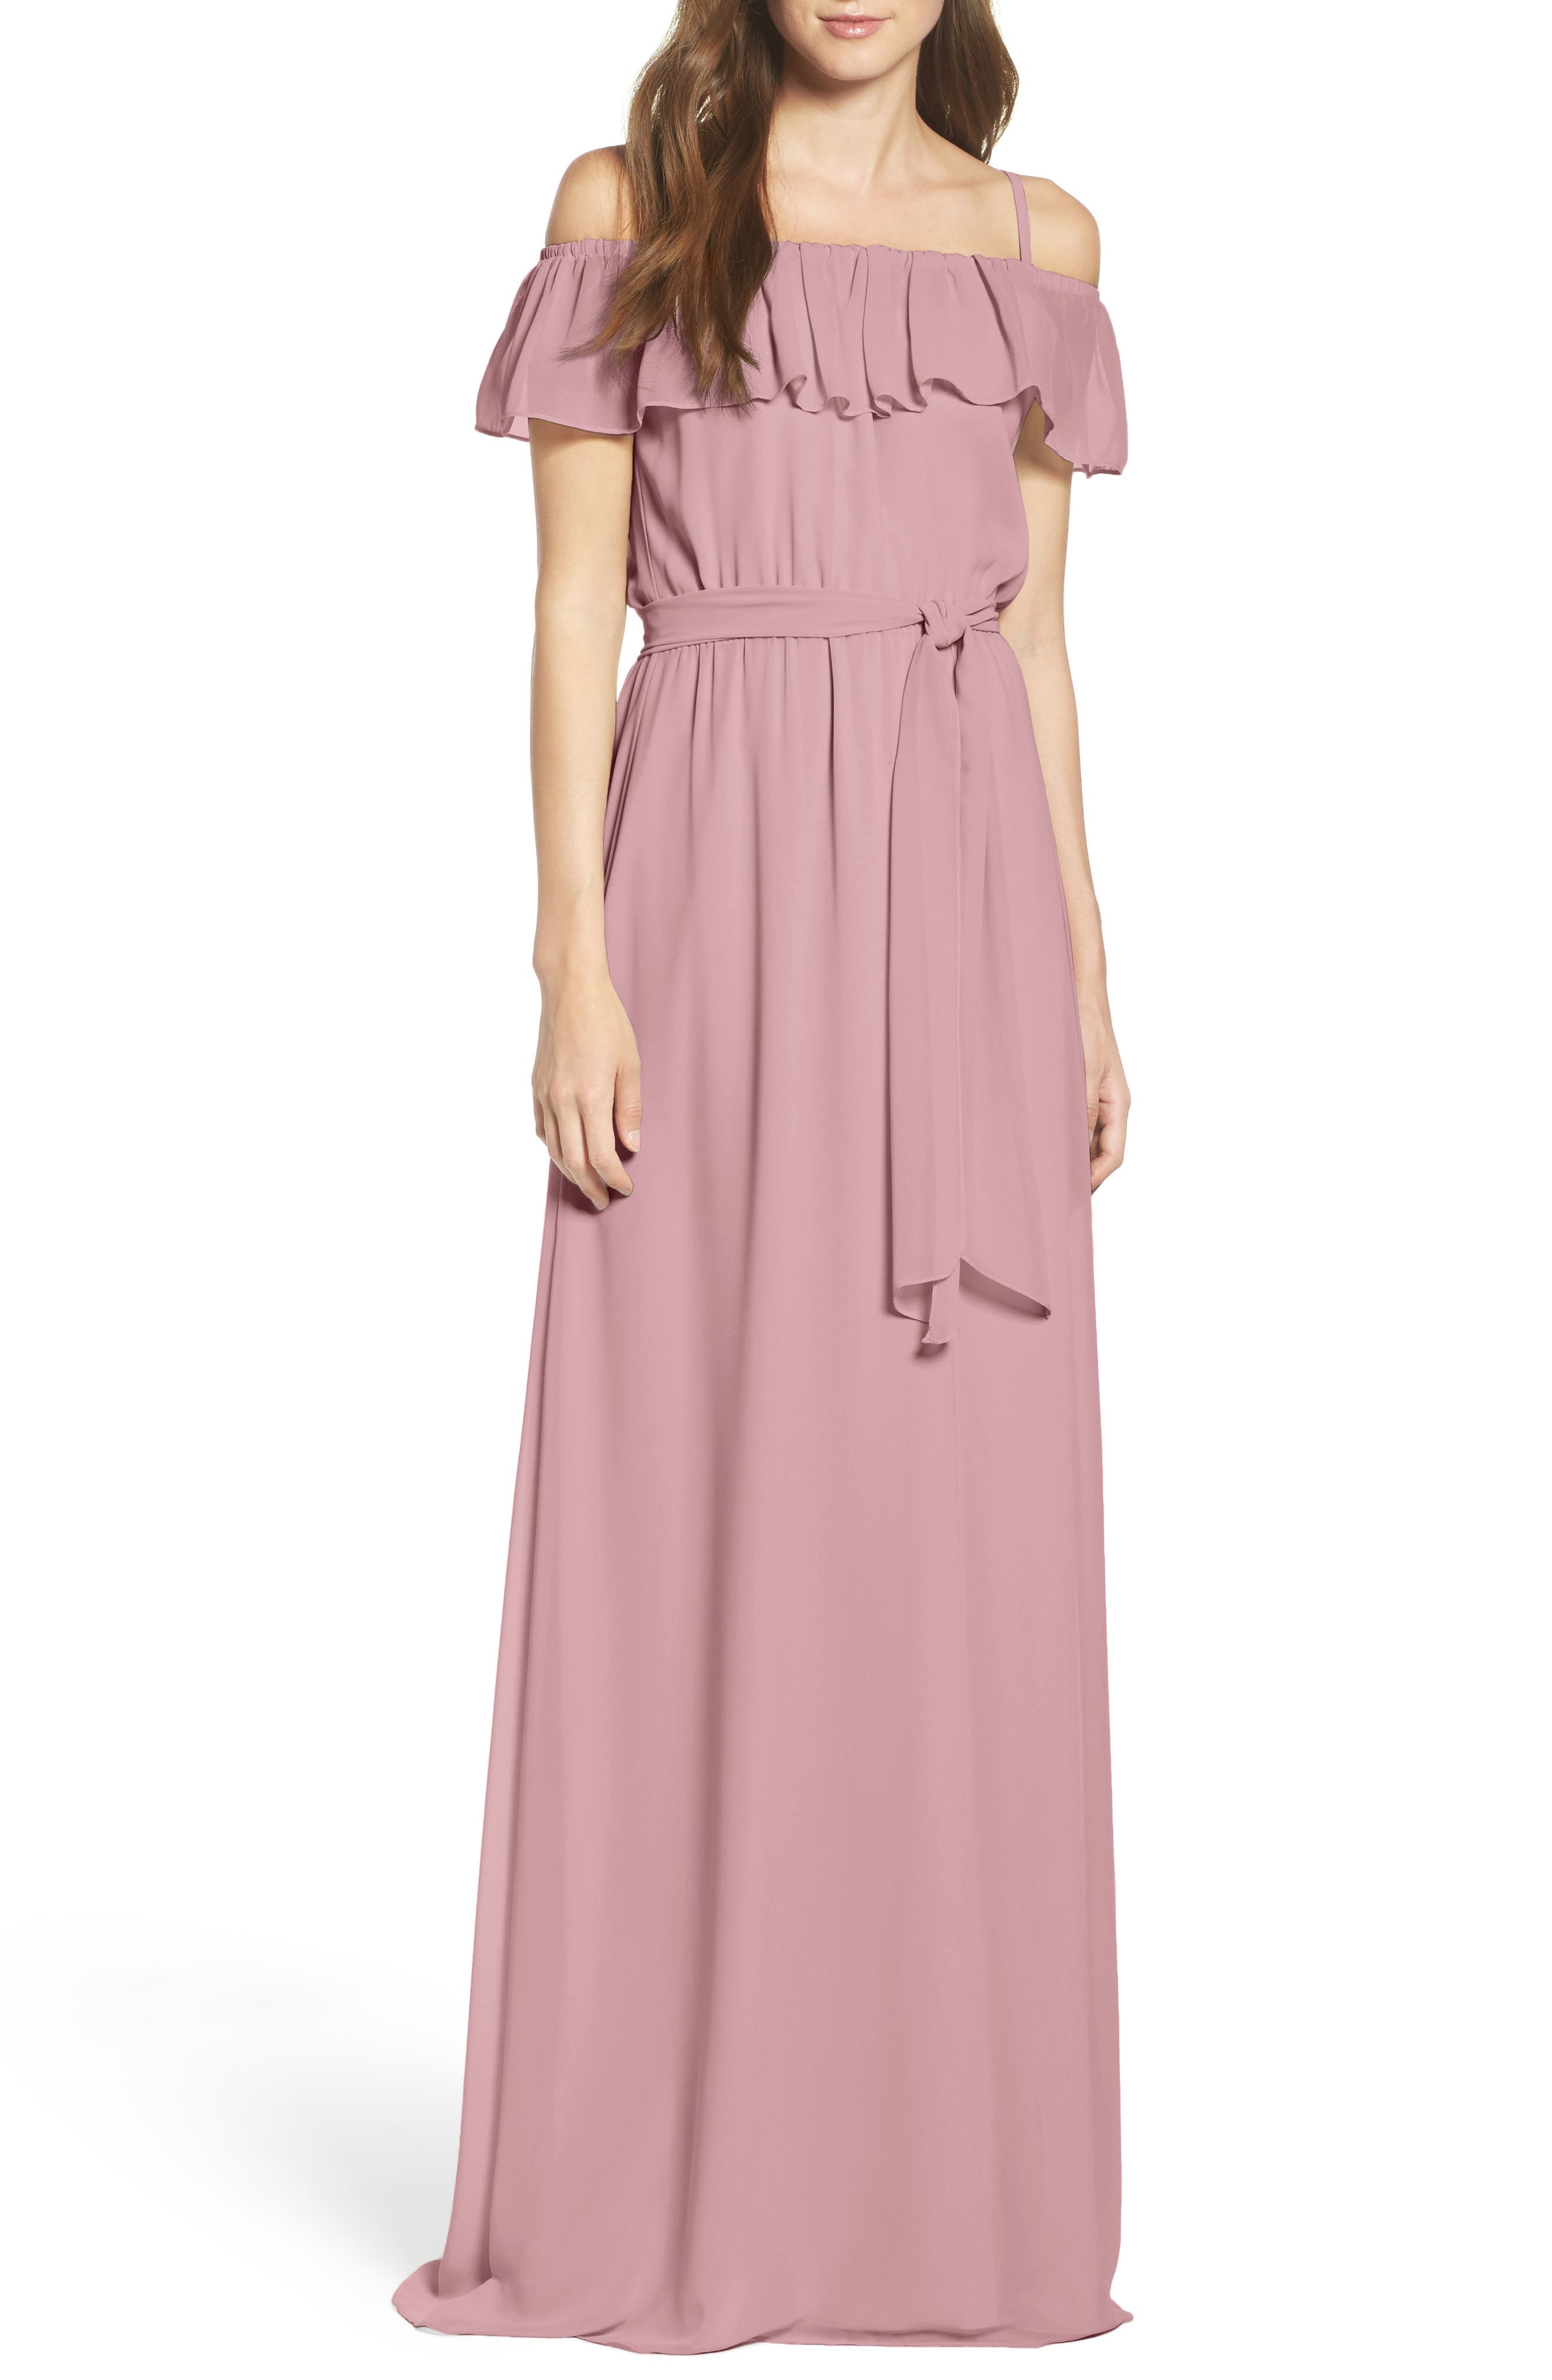 Alternate Image 1 Selected - Ceremony by Joanna August Ruffle Off the Shoulder Chiffon Gown